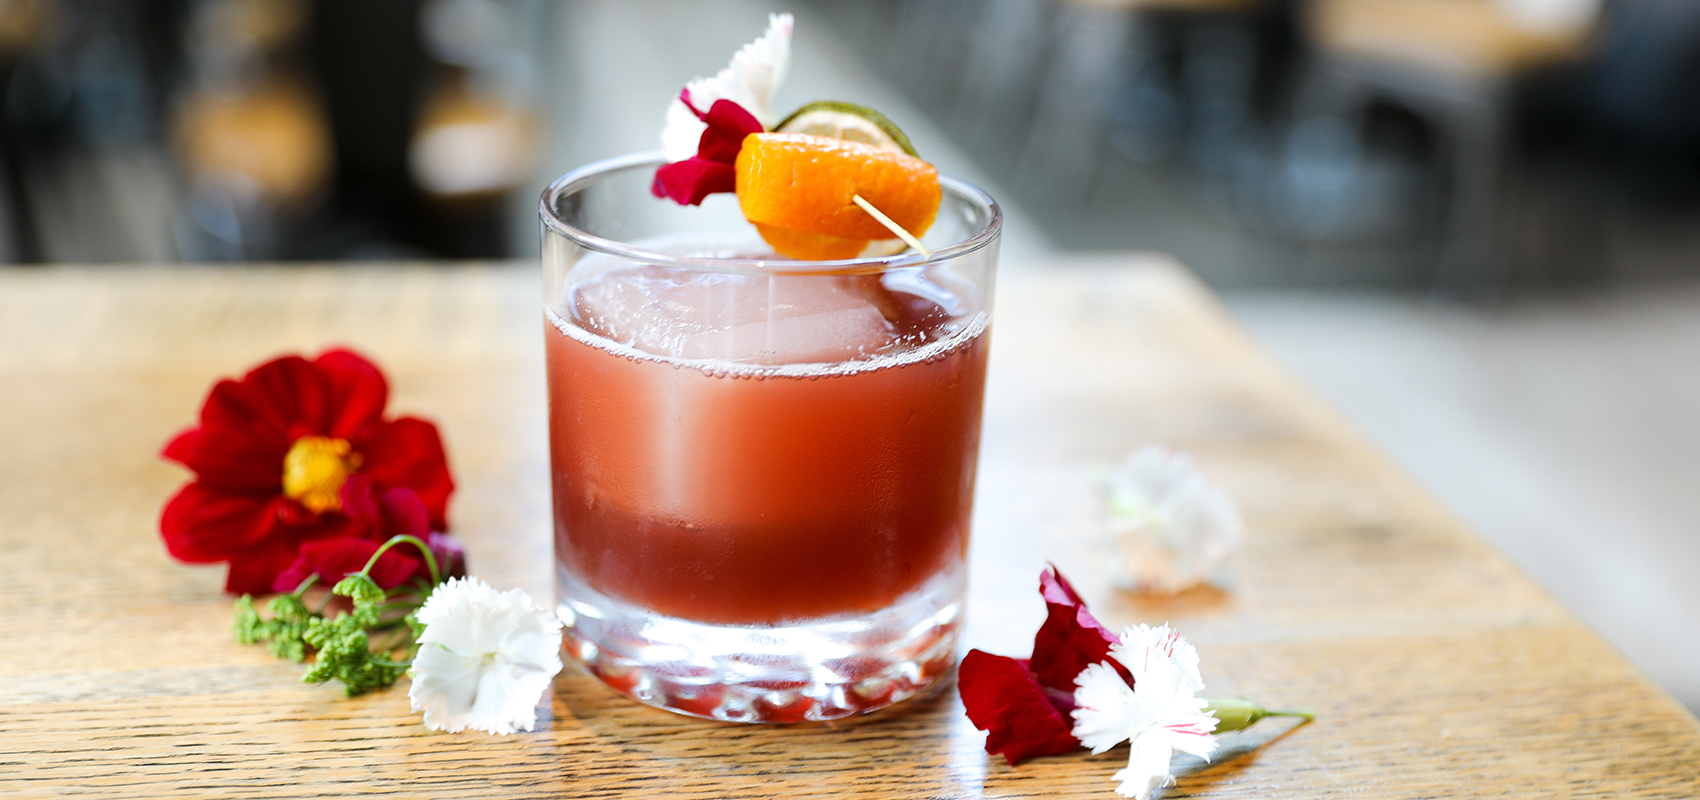 Get the Details on Park City's 2020 Summer Cocktail Contest Image